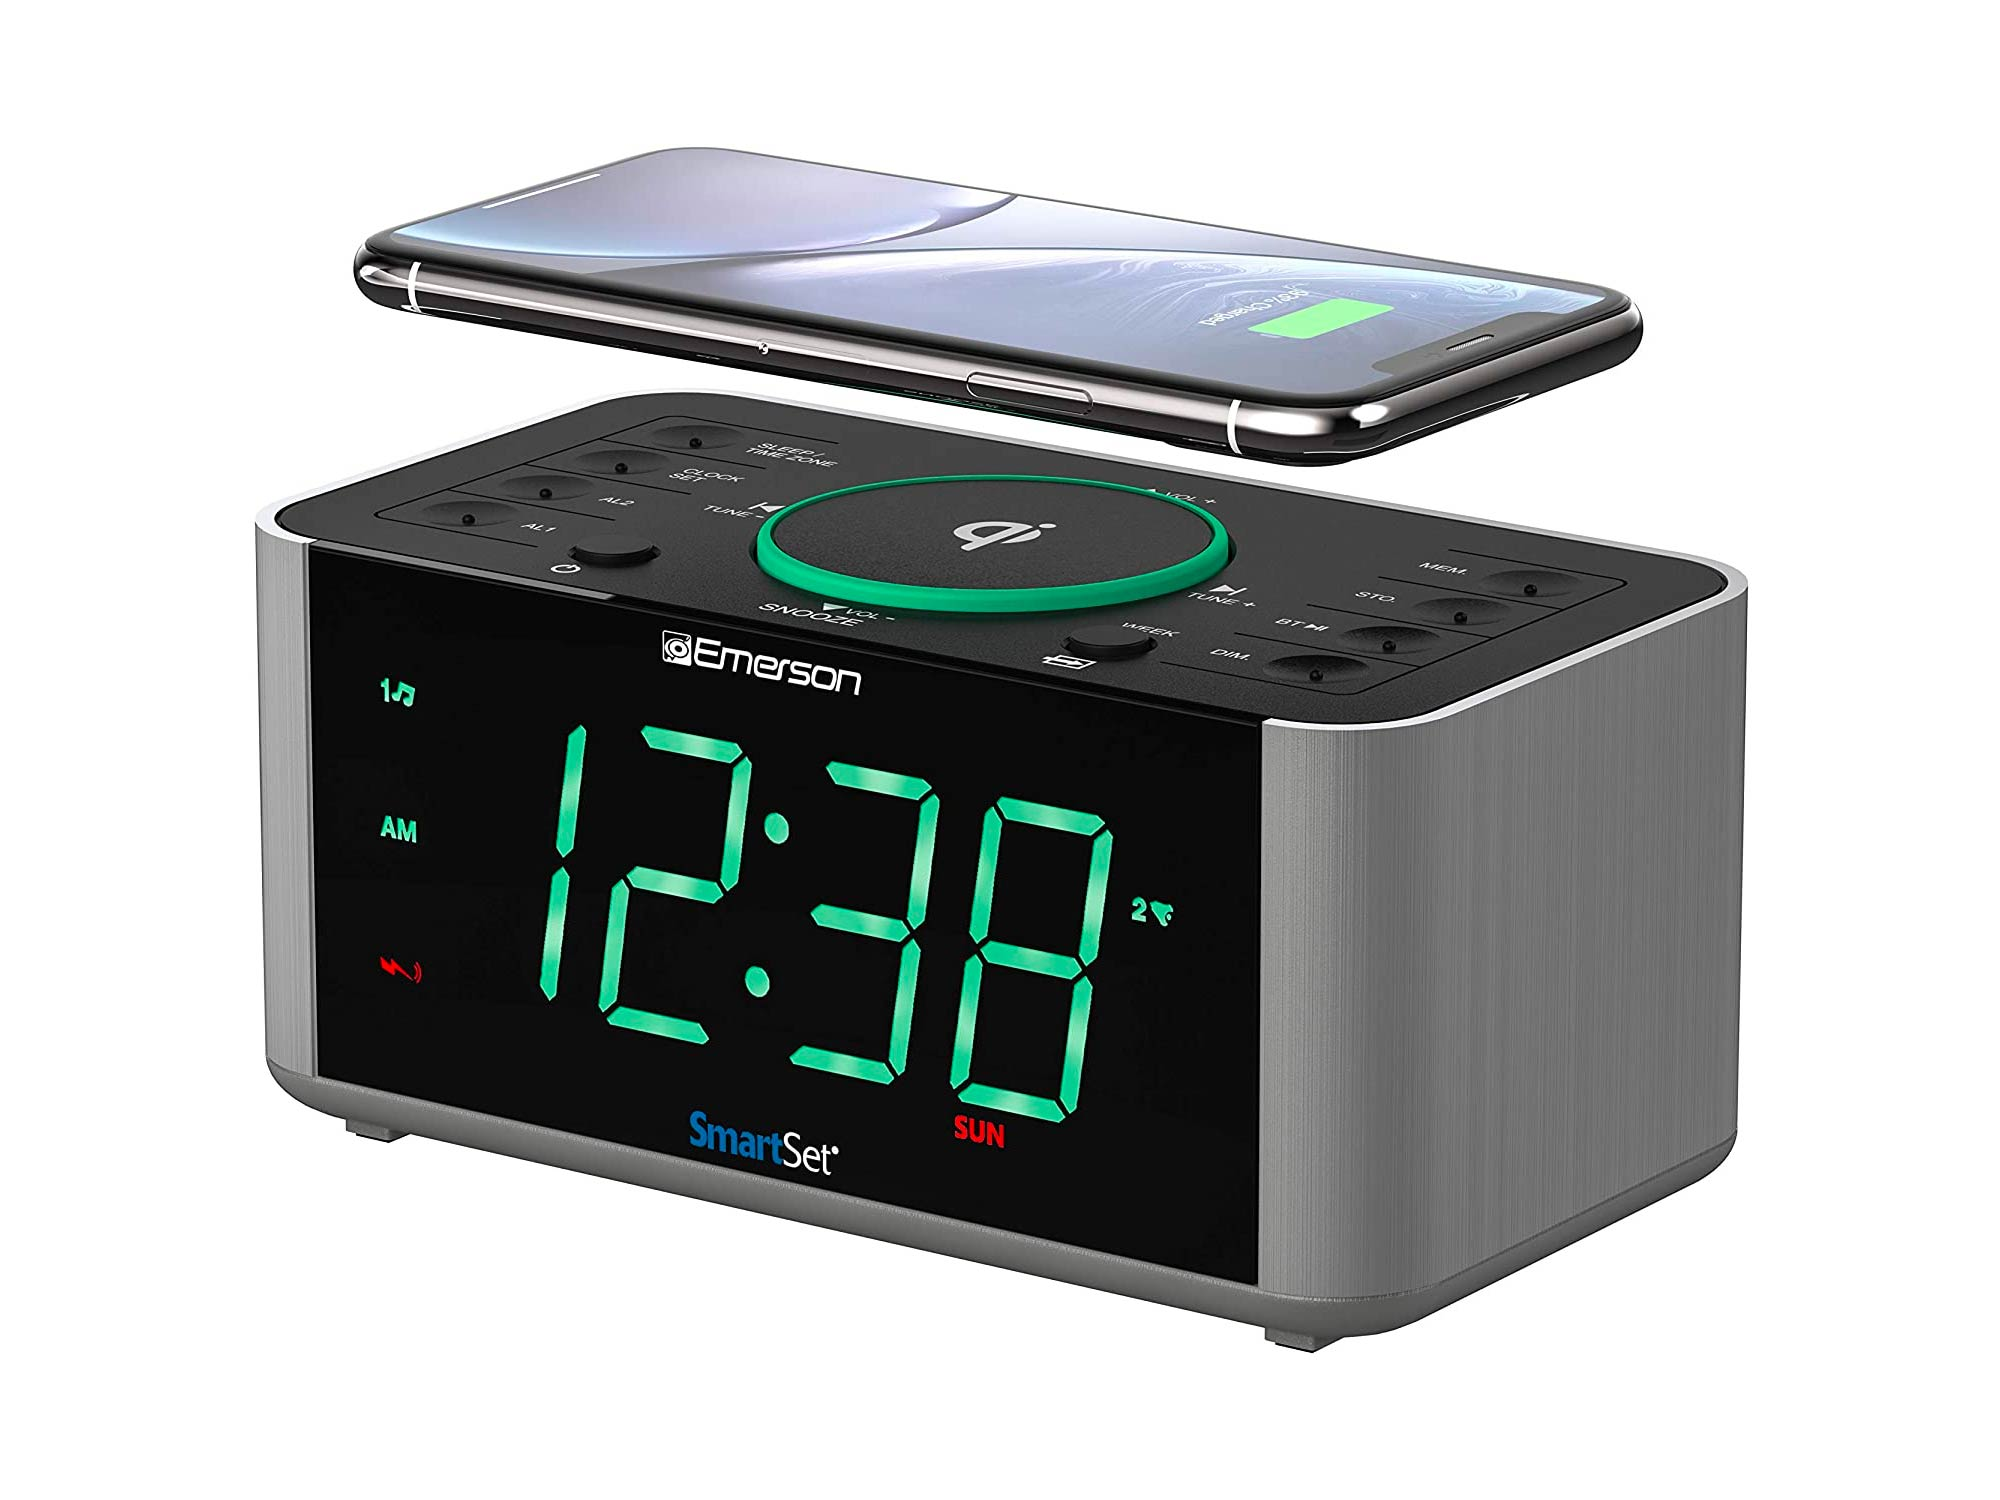 Emerson Alarm Clock Radio and QI Wireless Phone Charger with Bluetooth, Compatible with iPhone XS Max/XR/XS/X/8/Plus, 10W Galaxy S10/Plus/S10E/S9, All Qi Compatible Phones